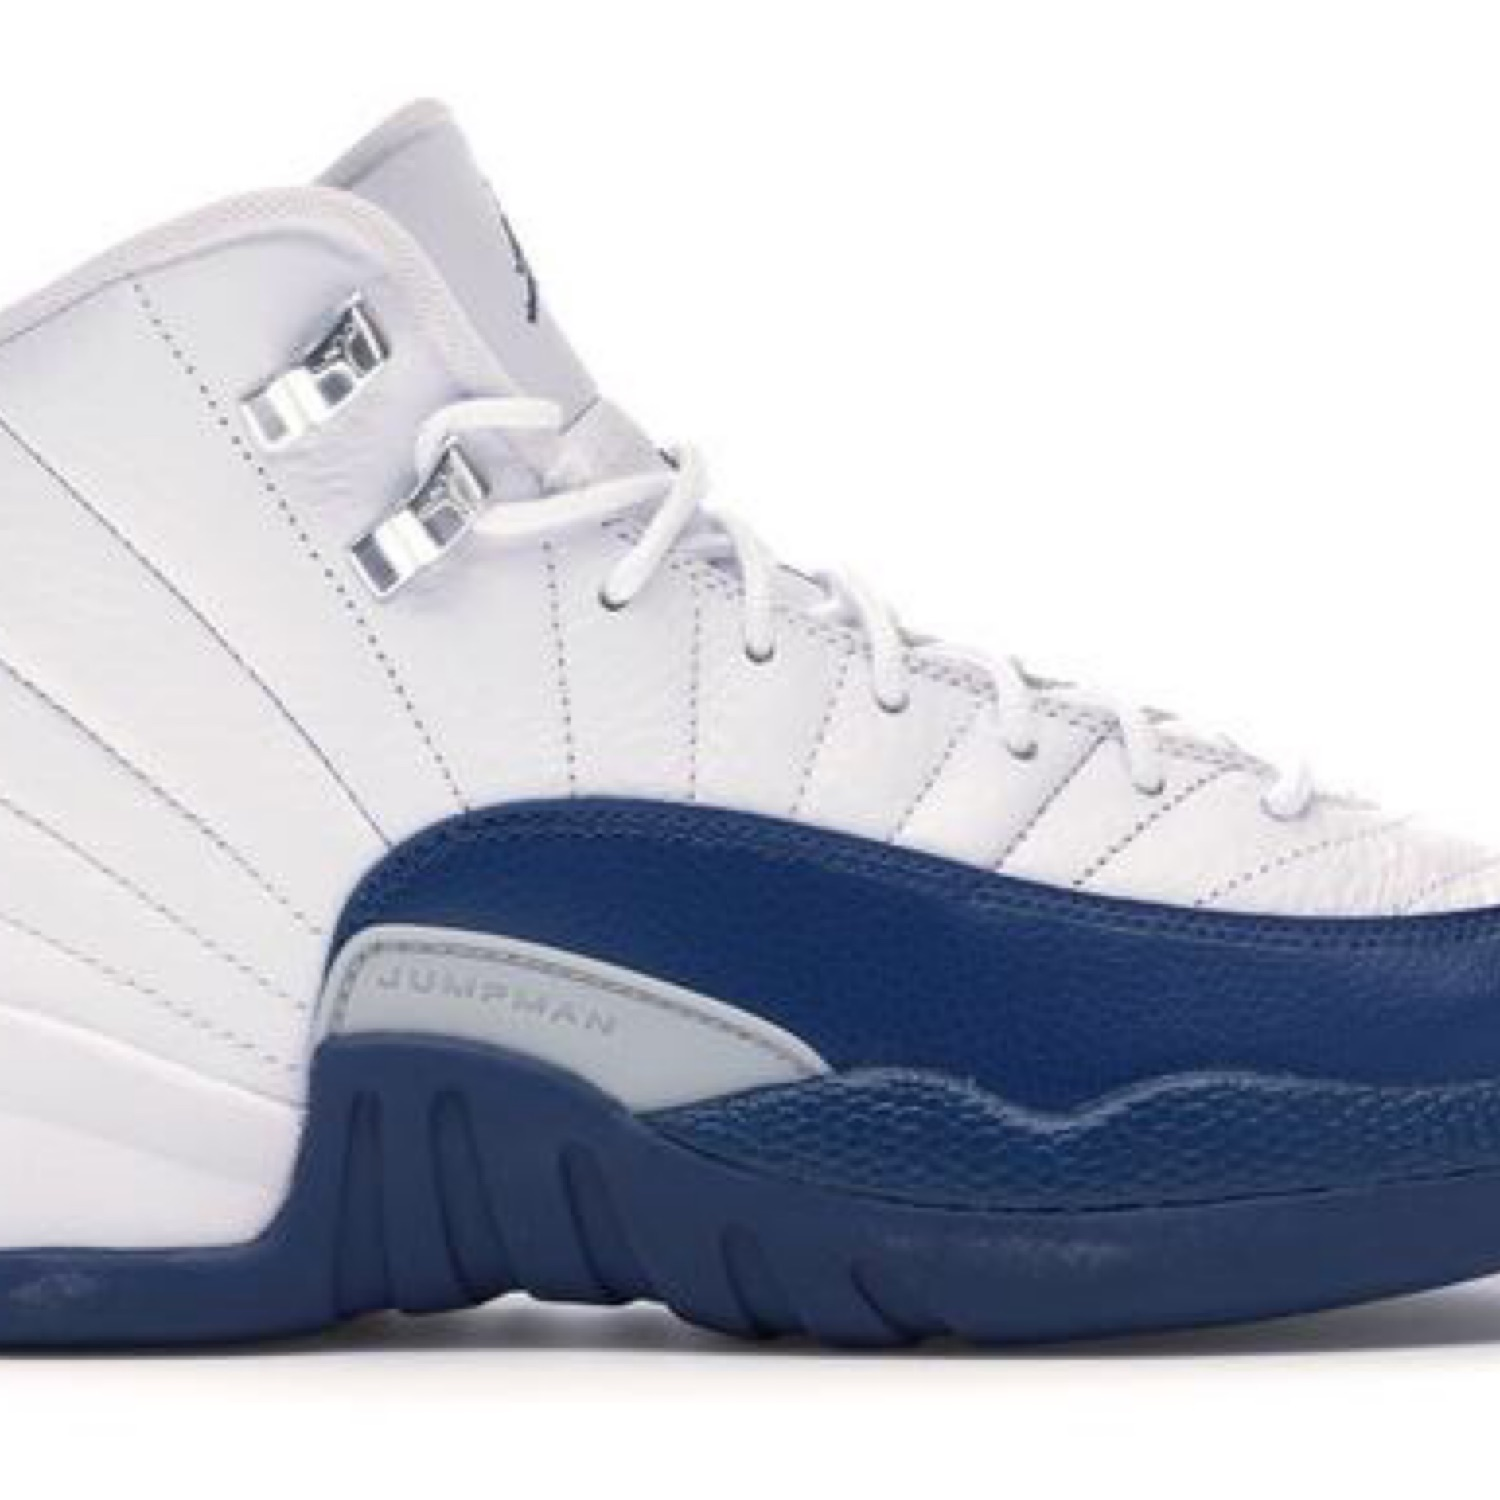 Nike Air Jordan 12 French Blue